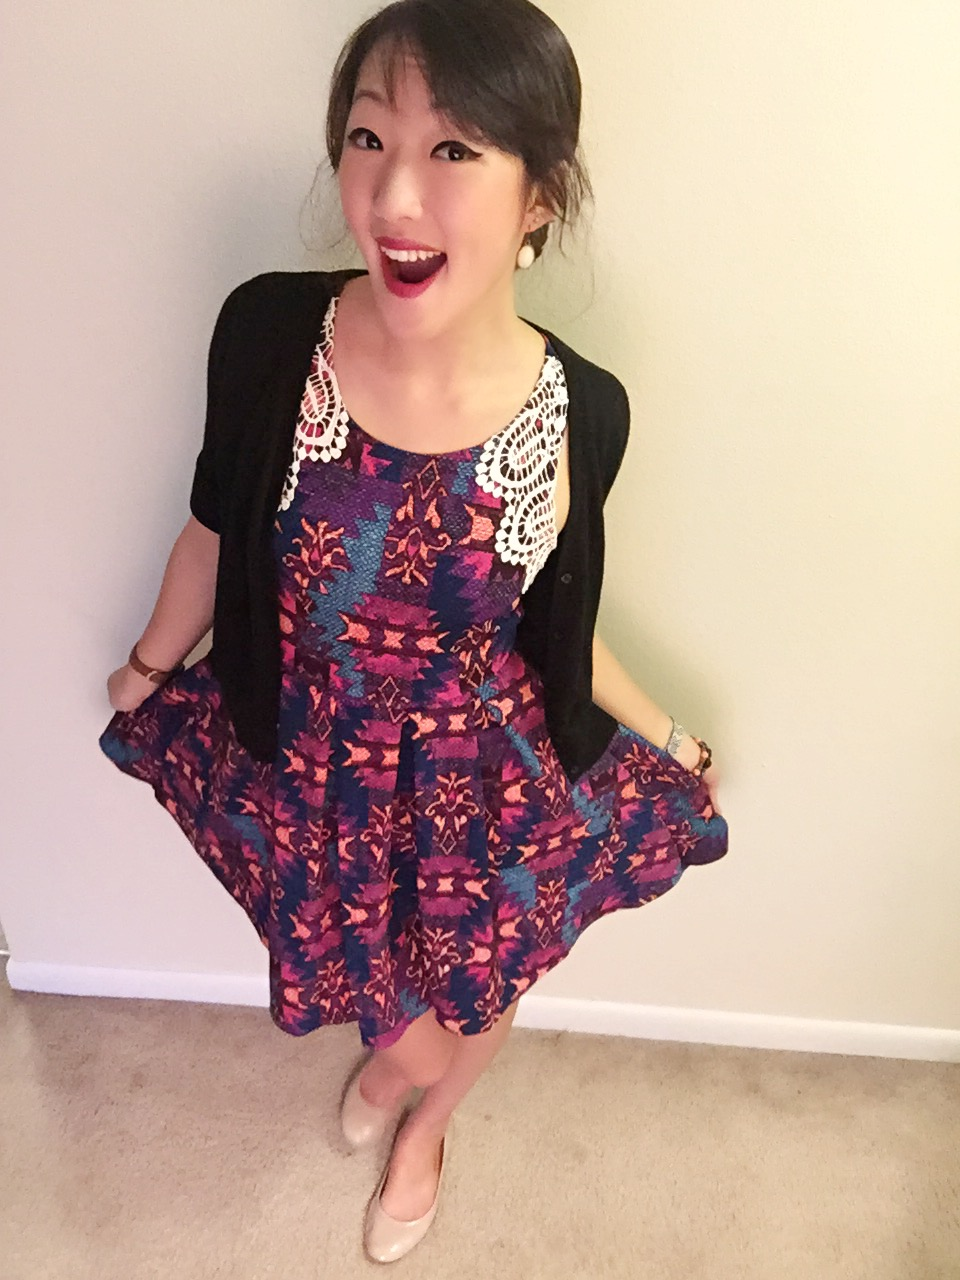 Dress: Target / Cardigan: Francesca's / Shoes: Target / Earrings: Charming Charlie's / Lipstick: NYX